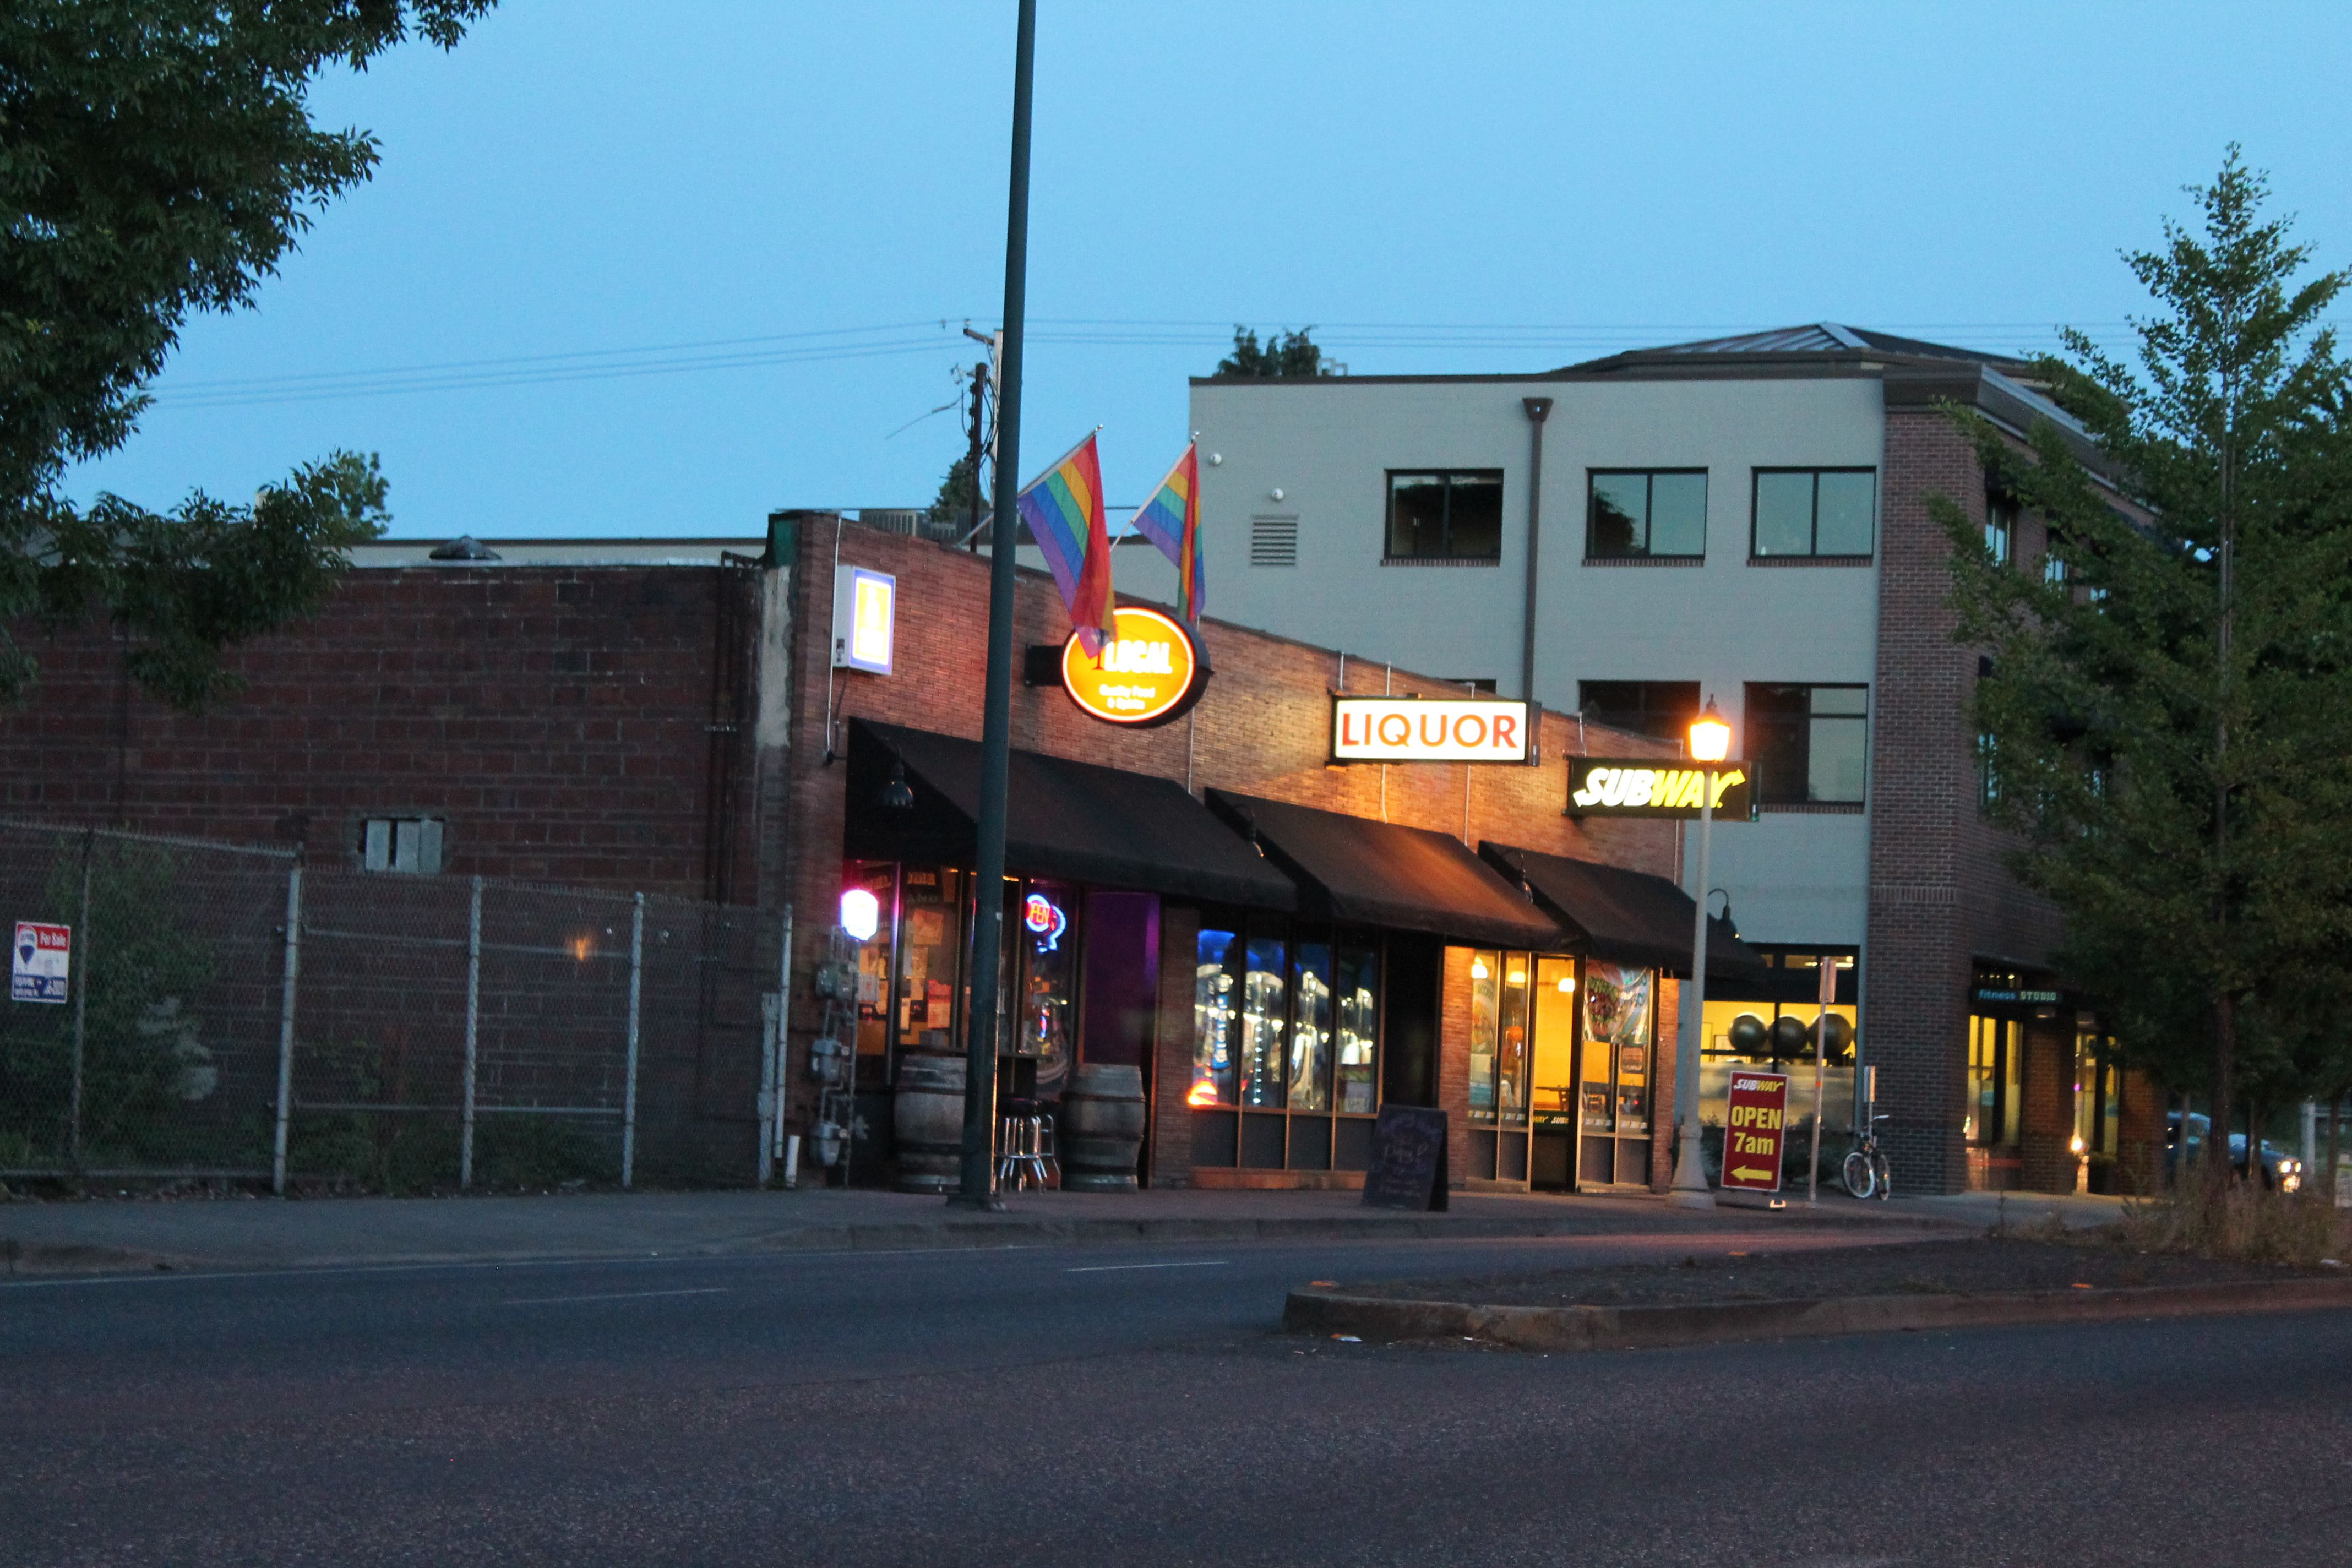 Portland Oregon Gay Nightlife and Bars Guide